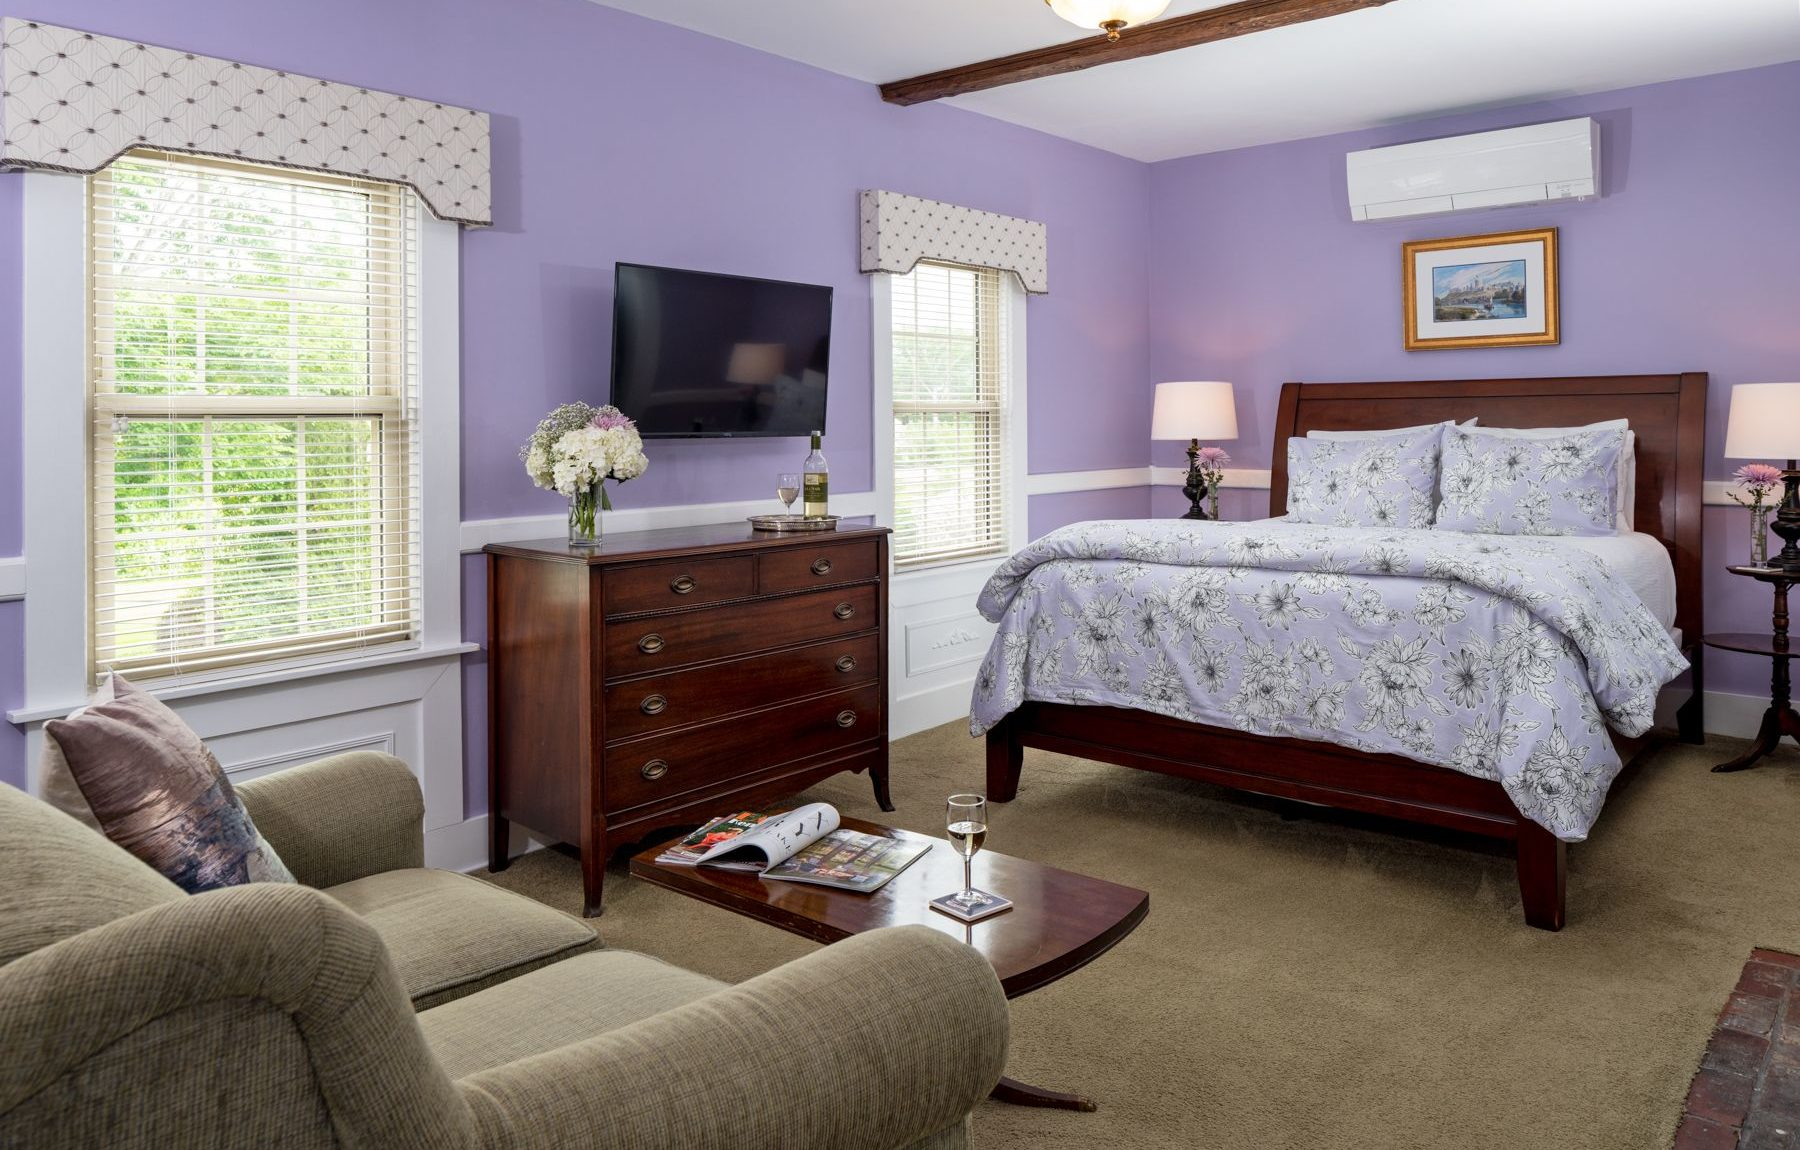 Colonial brick gas fireplace and a four poster queen bed